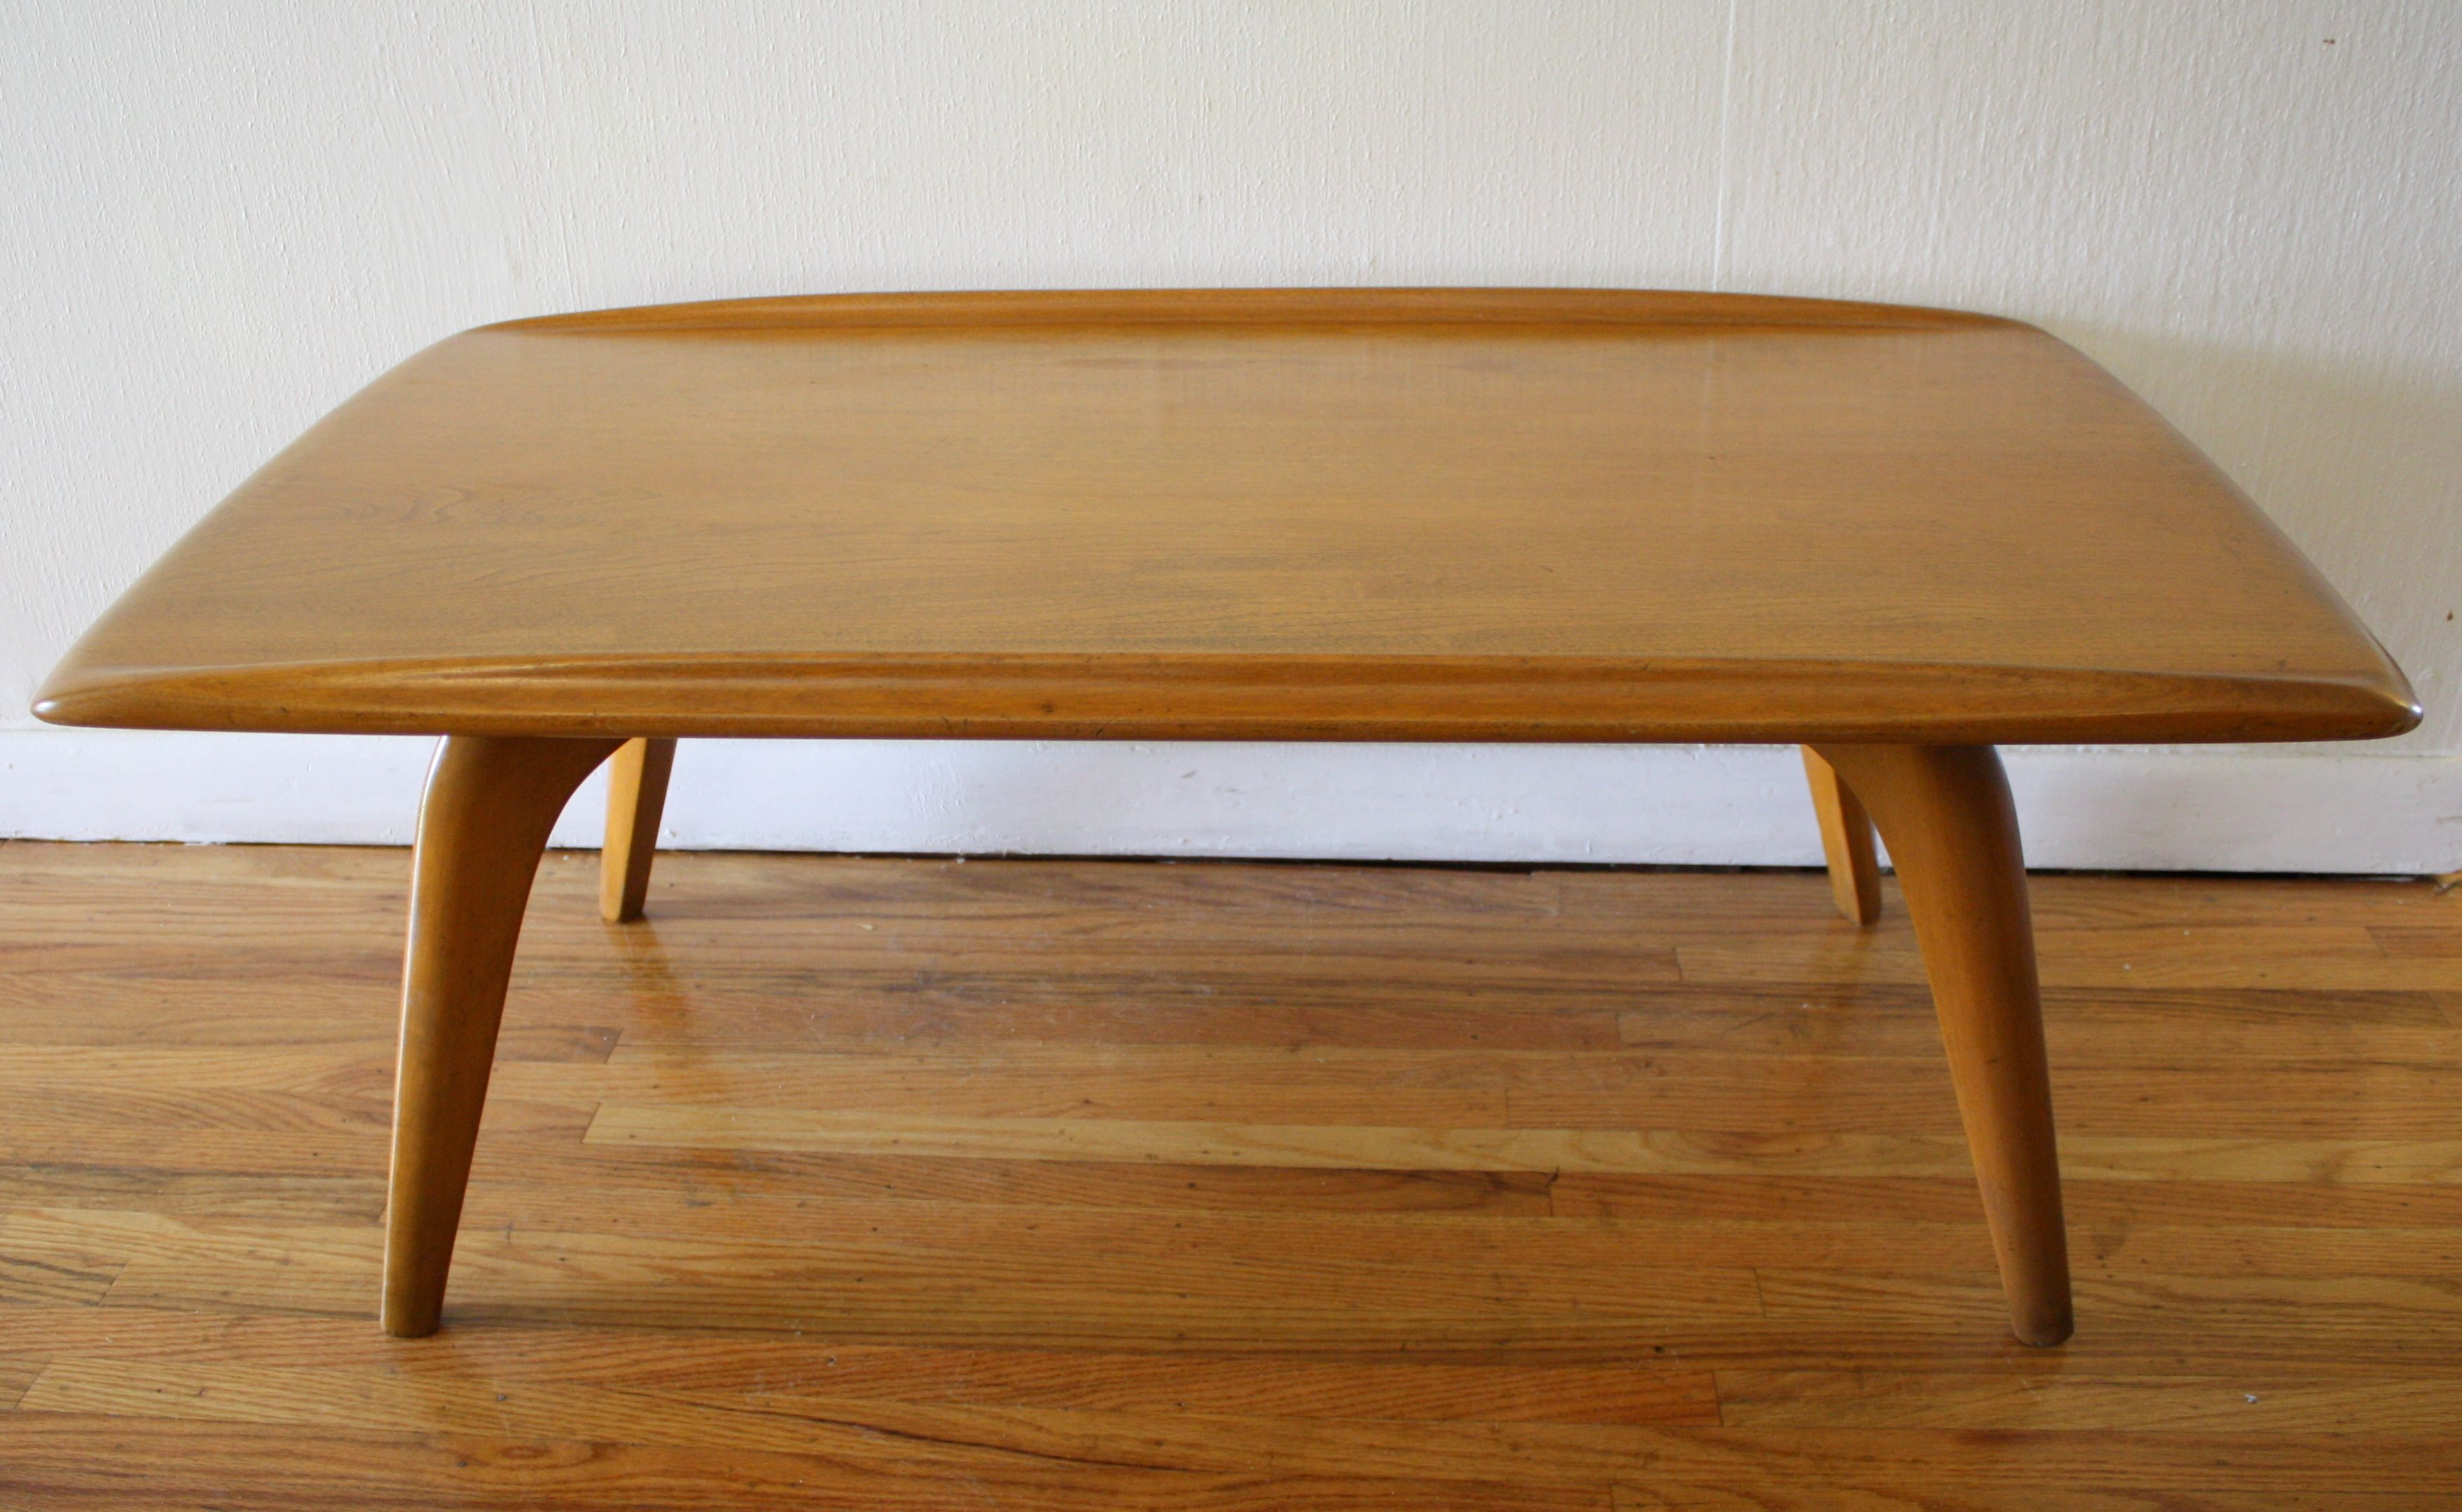 Heywood wakefield coffee table with surfboard edges this is a heywood wakefield coffee table with surfboard edges this is a heywood wakefield coffee table in geotapseo Image collections